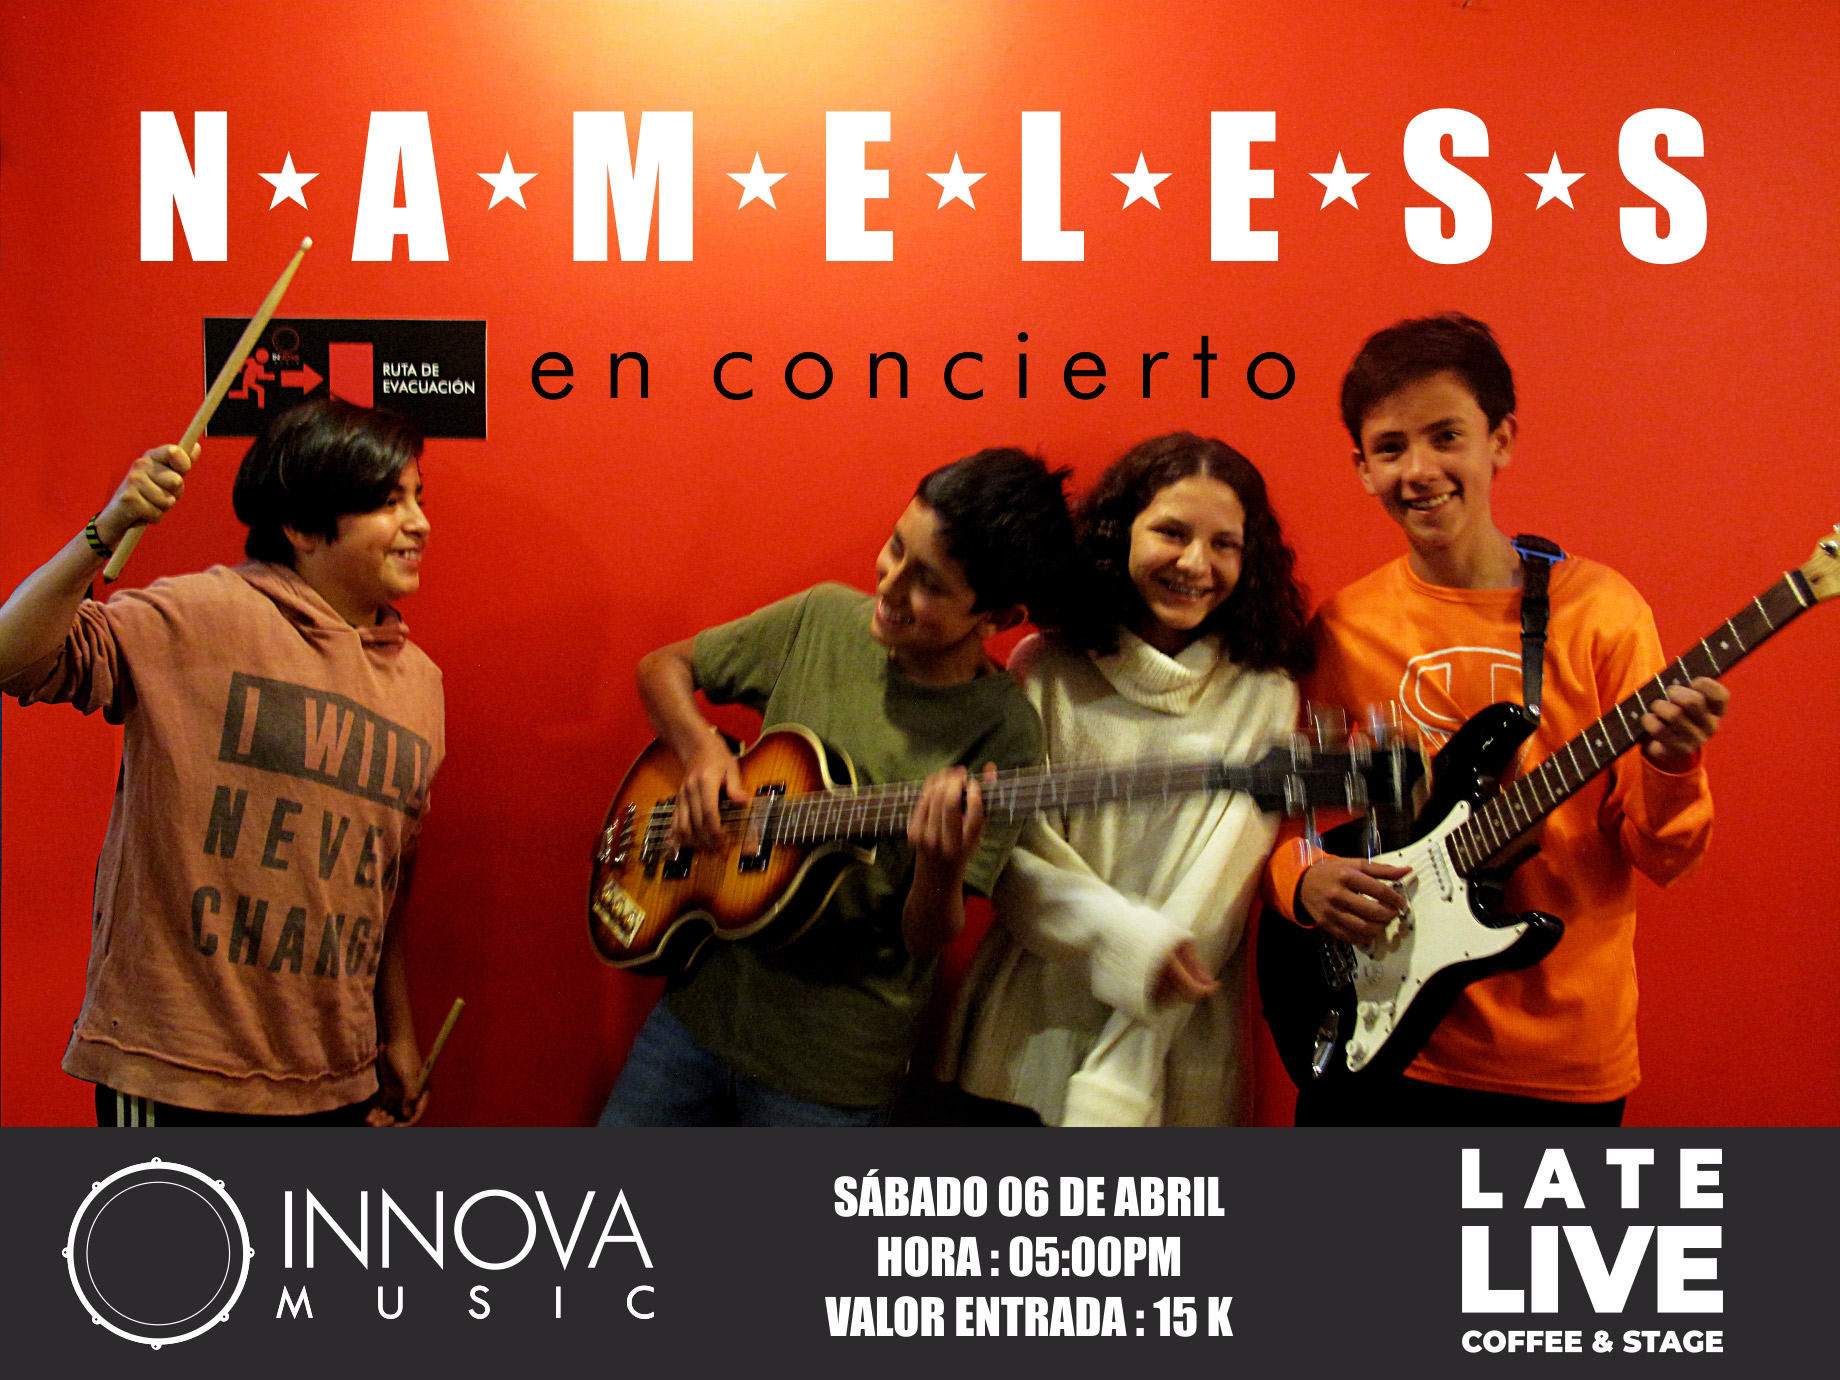 Concierto de Nameless 6 de abril, no faltes!